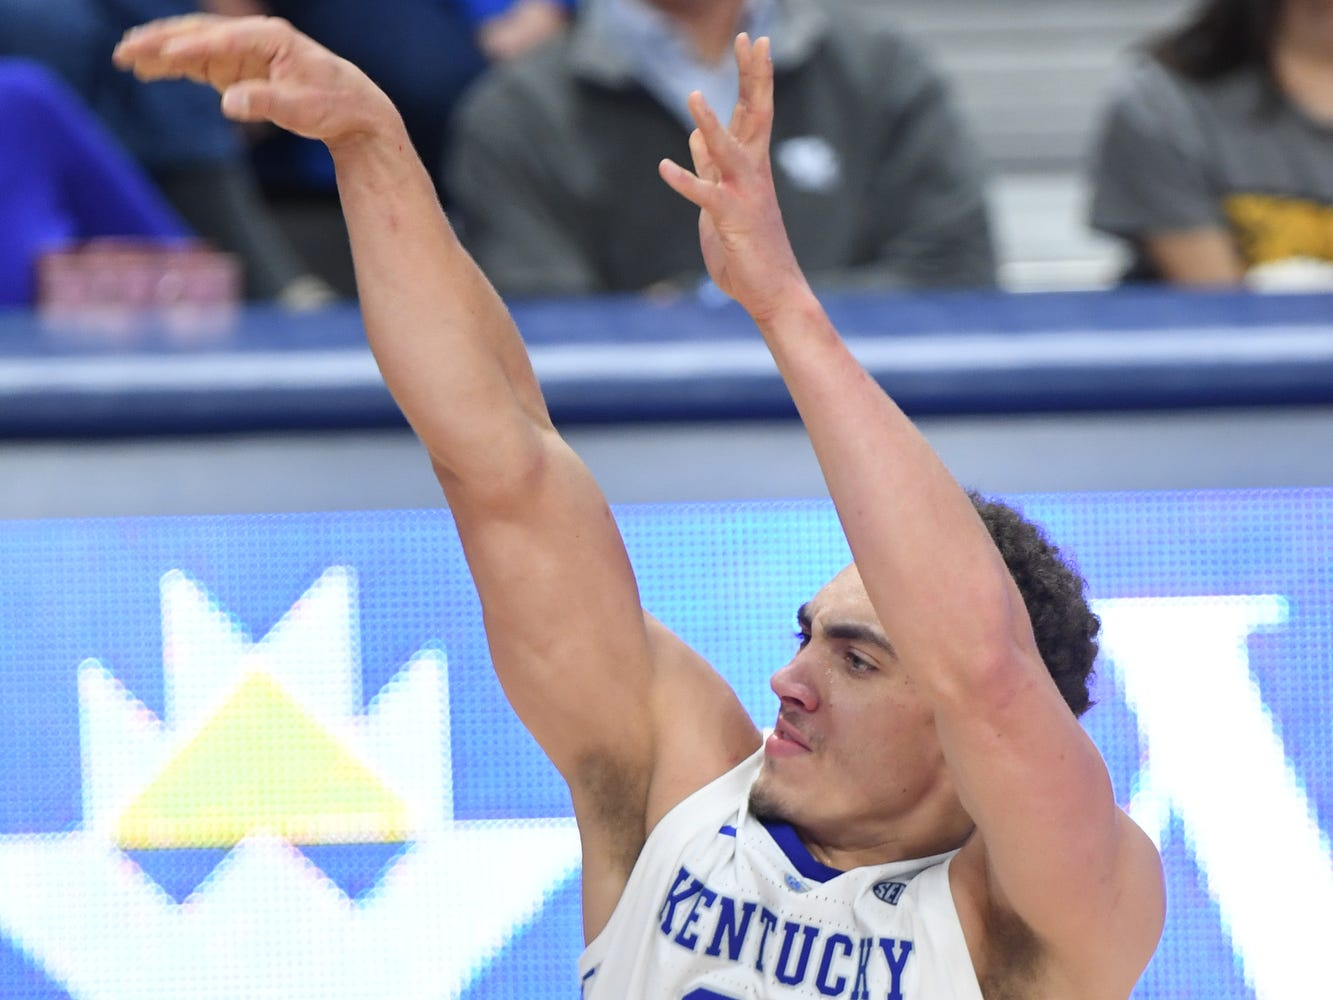 UK F Reid Travis shoots a three pointer during the University of Kentucky men's basketball game against UNC Greensboro at Rupp Arena in Lexington, Kentucky on Saturday, December 1, 2018.